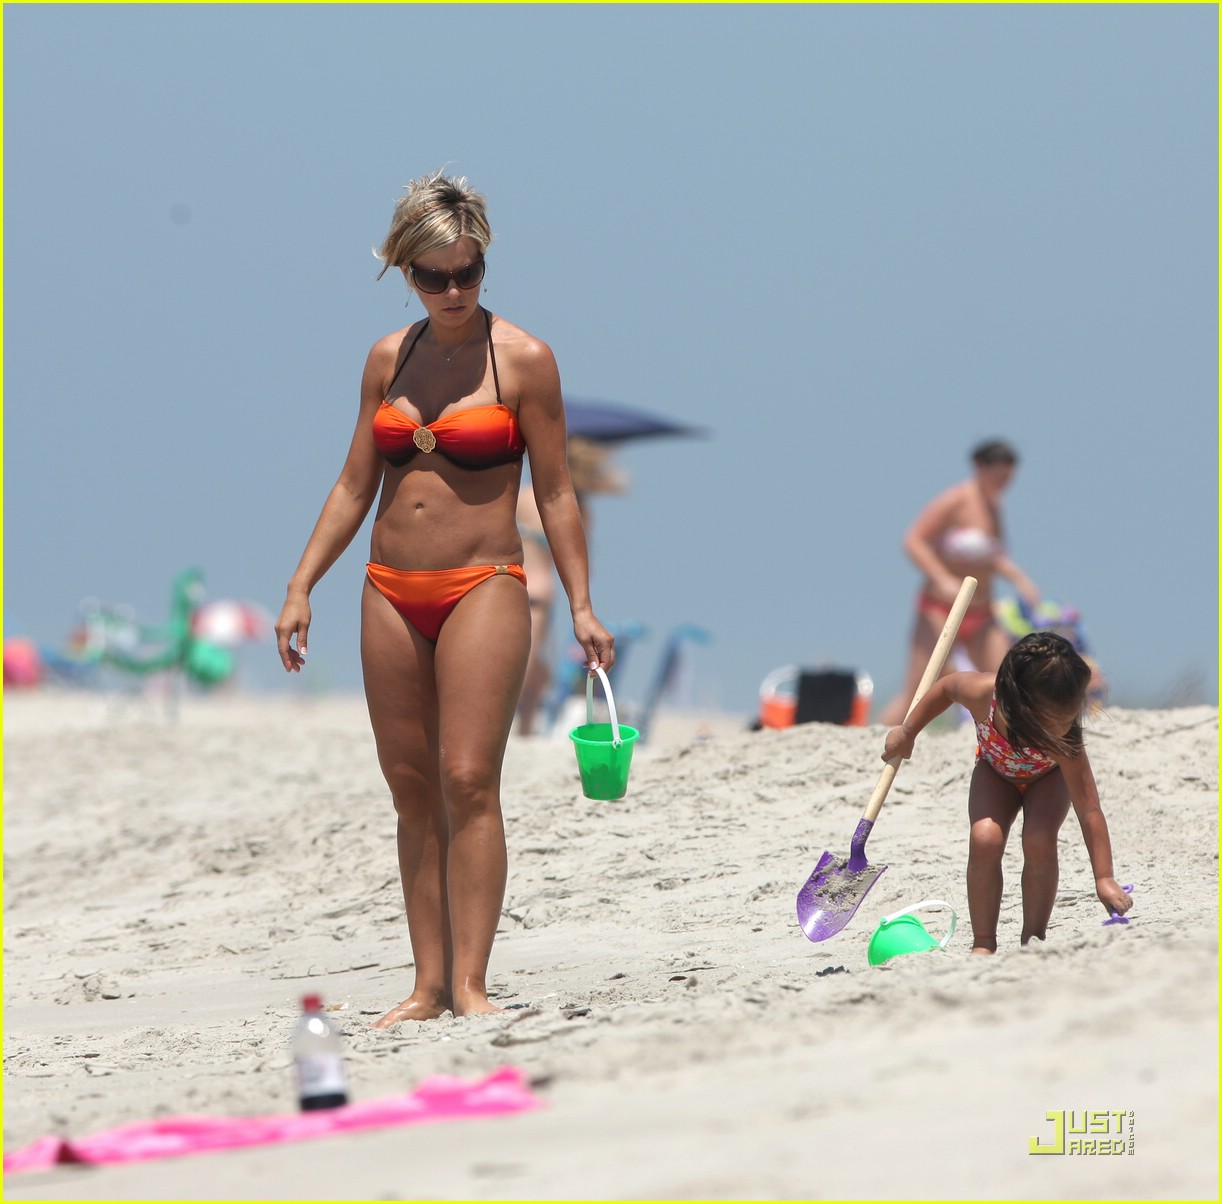 kate gosselin bikini 11 kate gosselin bikini 11. Jon & Kate Plus 8 mom Kate Gosselin and bodyguard ...